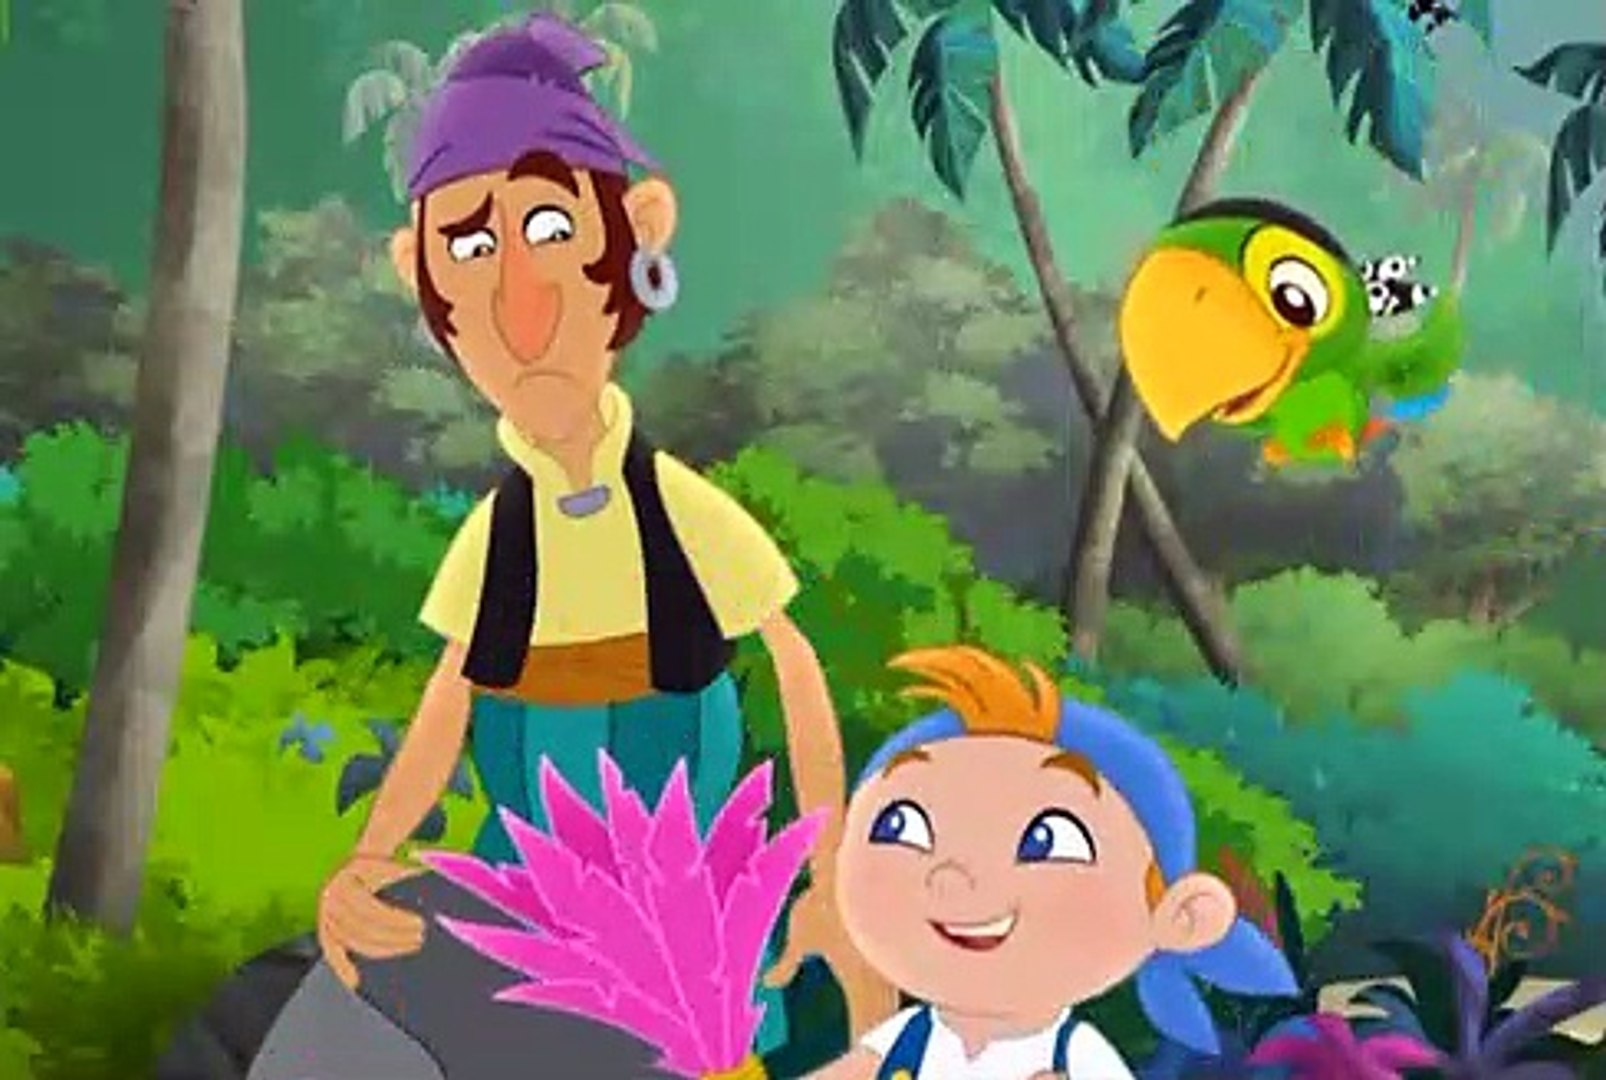 Jake And The Never Land Pirates S02e04 Captain Hook S Hooks Mr Smee S Pet Video Dailymotion